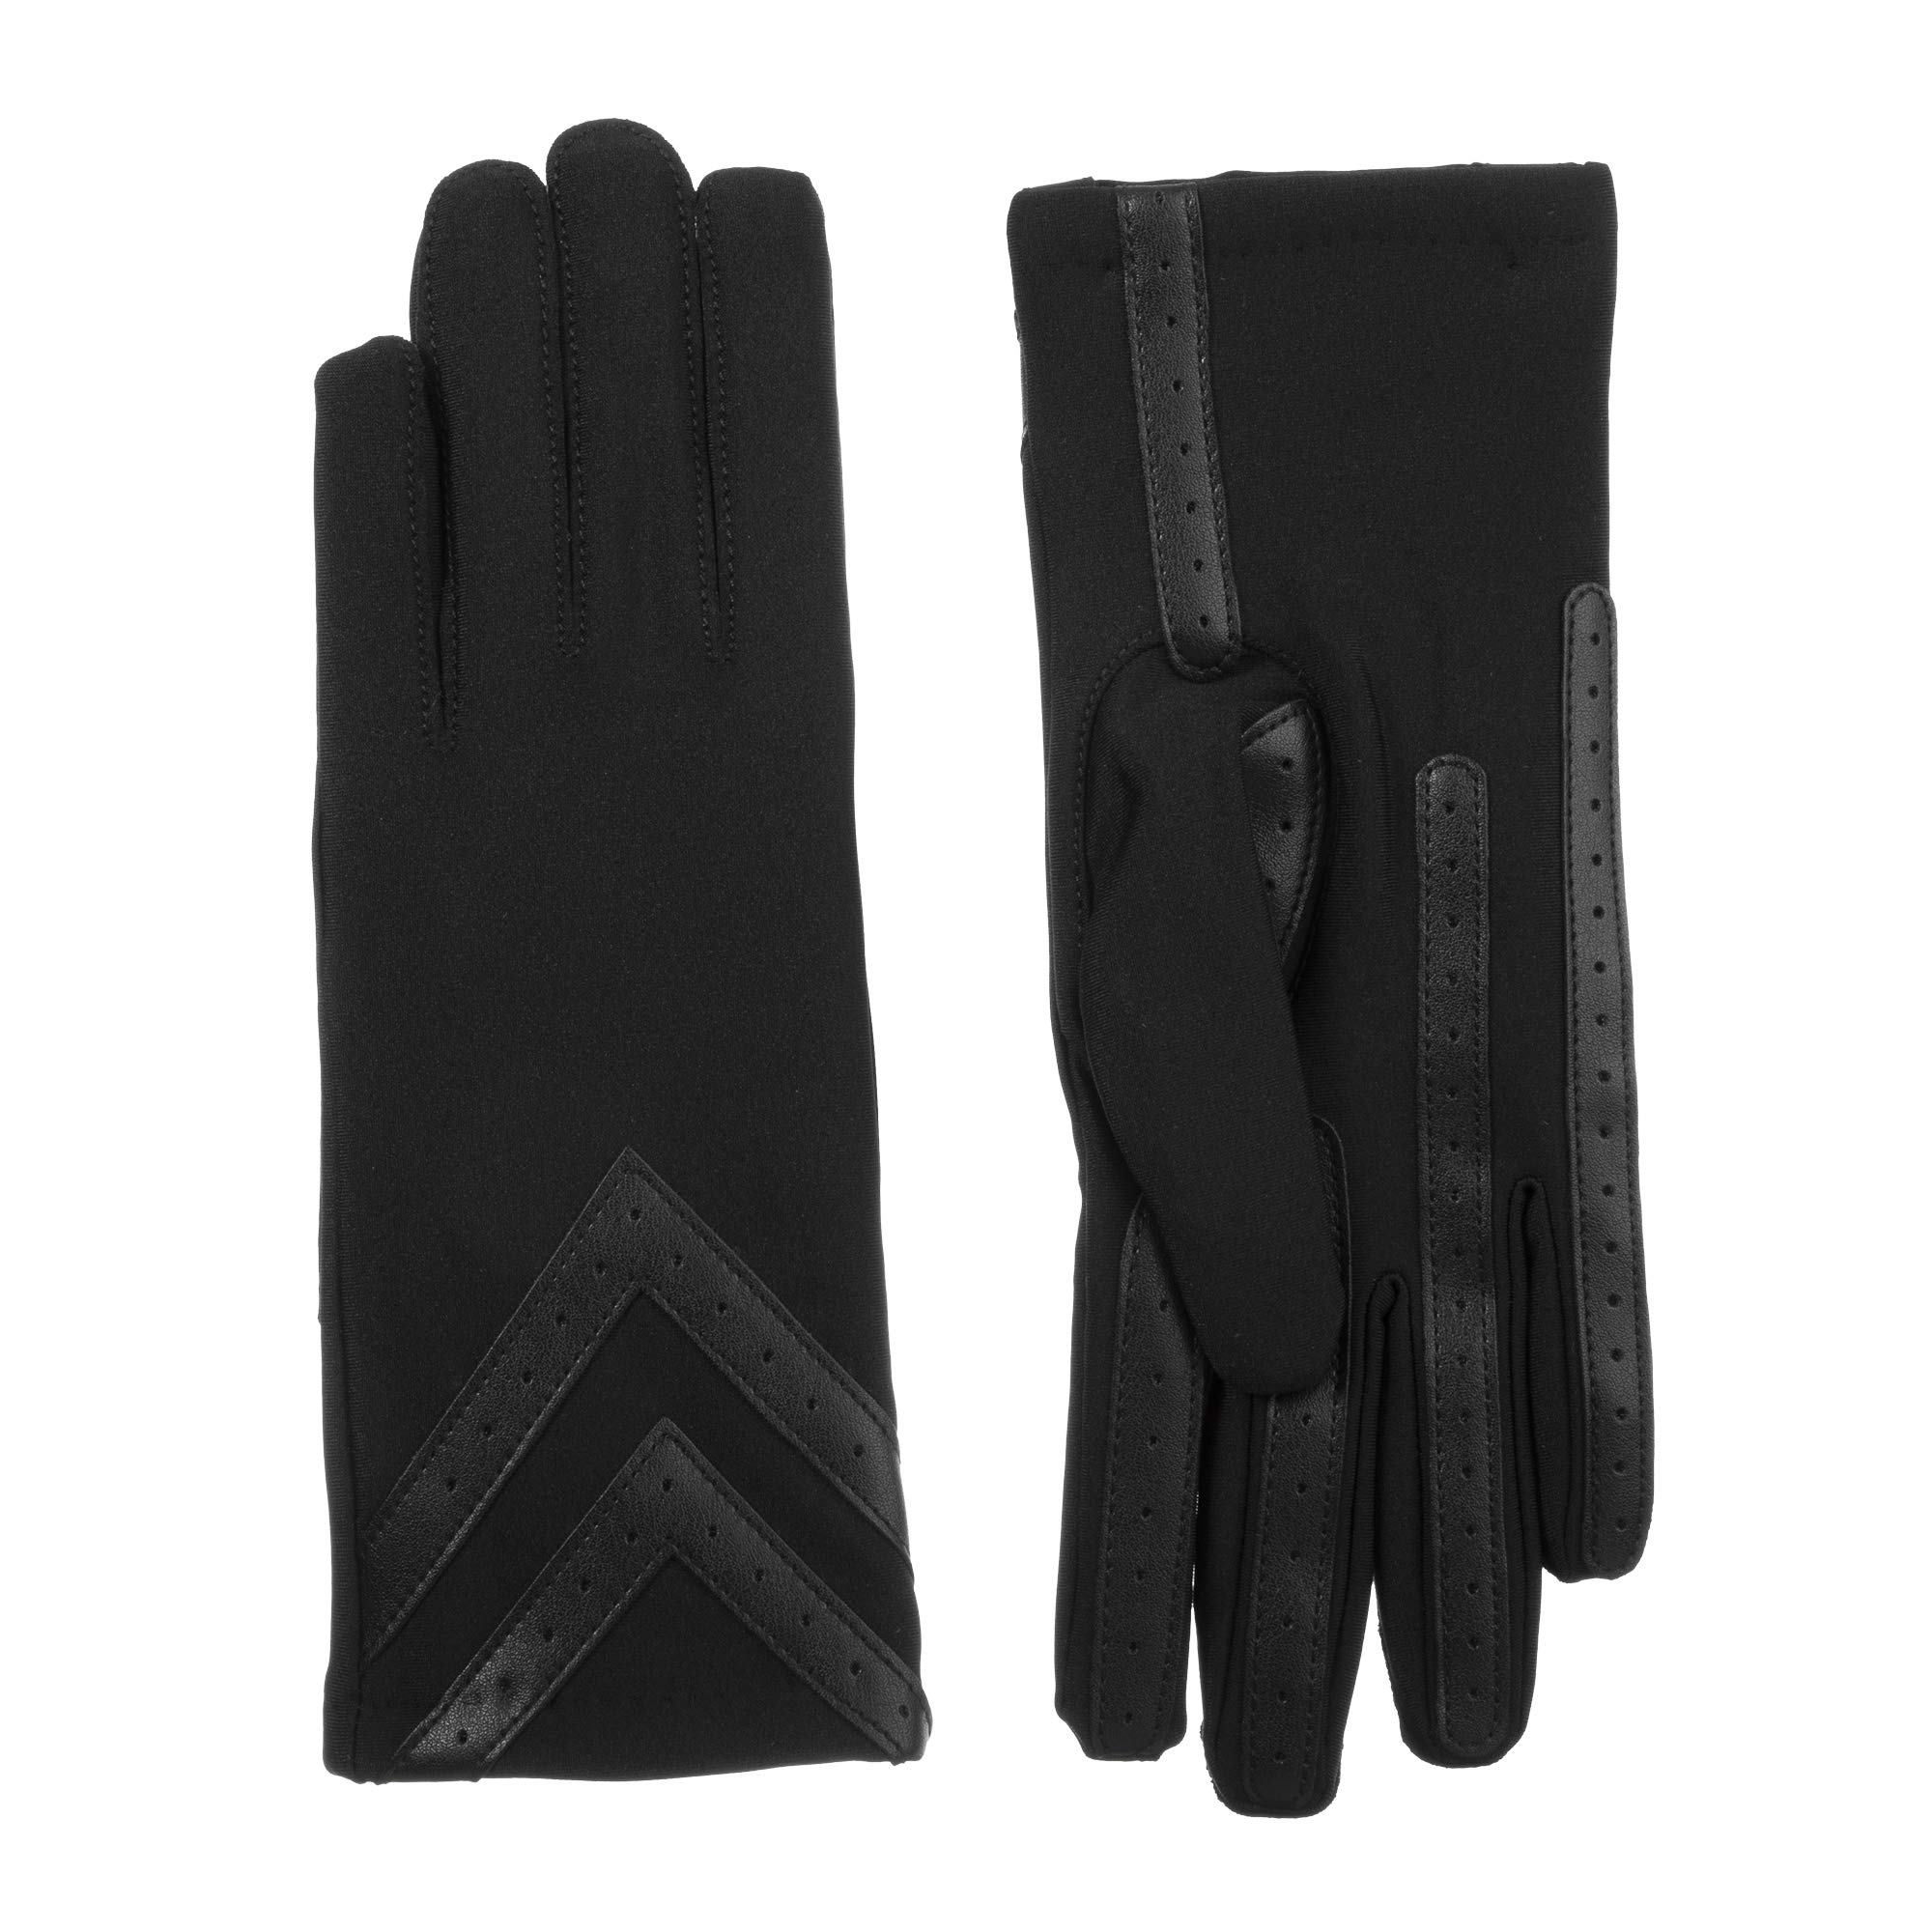 ISOTONER Women's Fleece-Lined Gloves with Chevron Applique and Smart Touch, smartDRI Solid Black, Small/Medium by ISOTONER